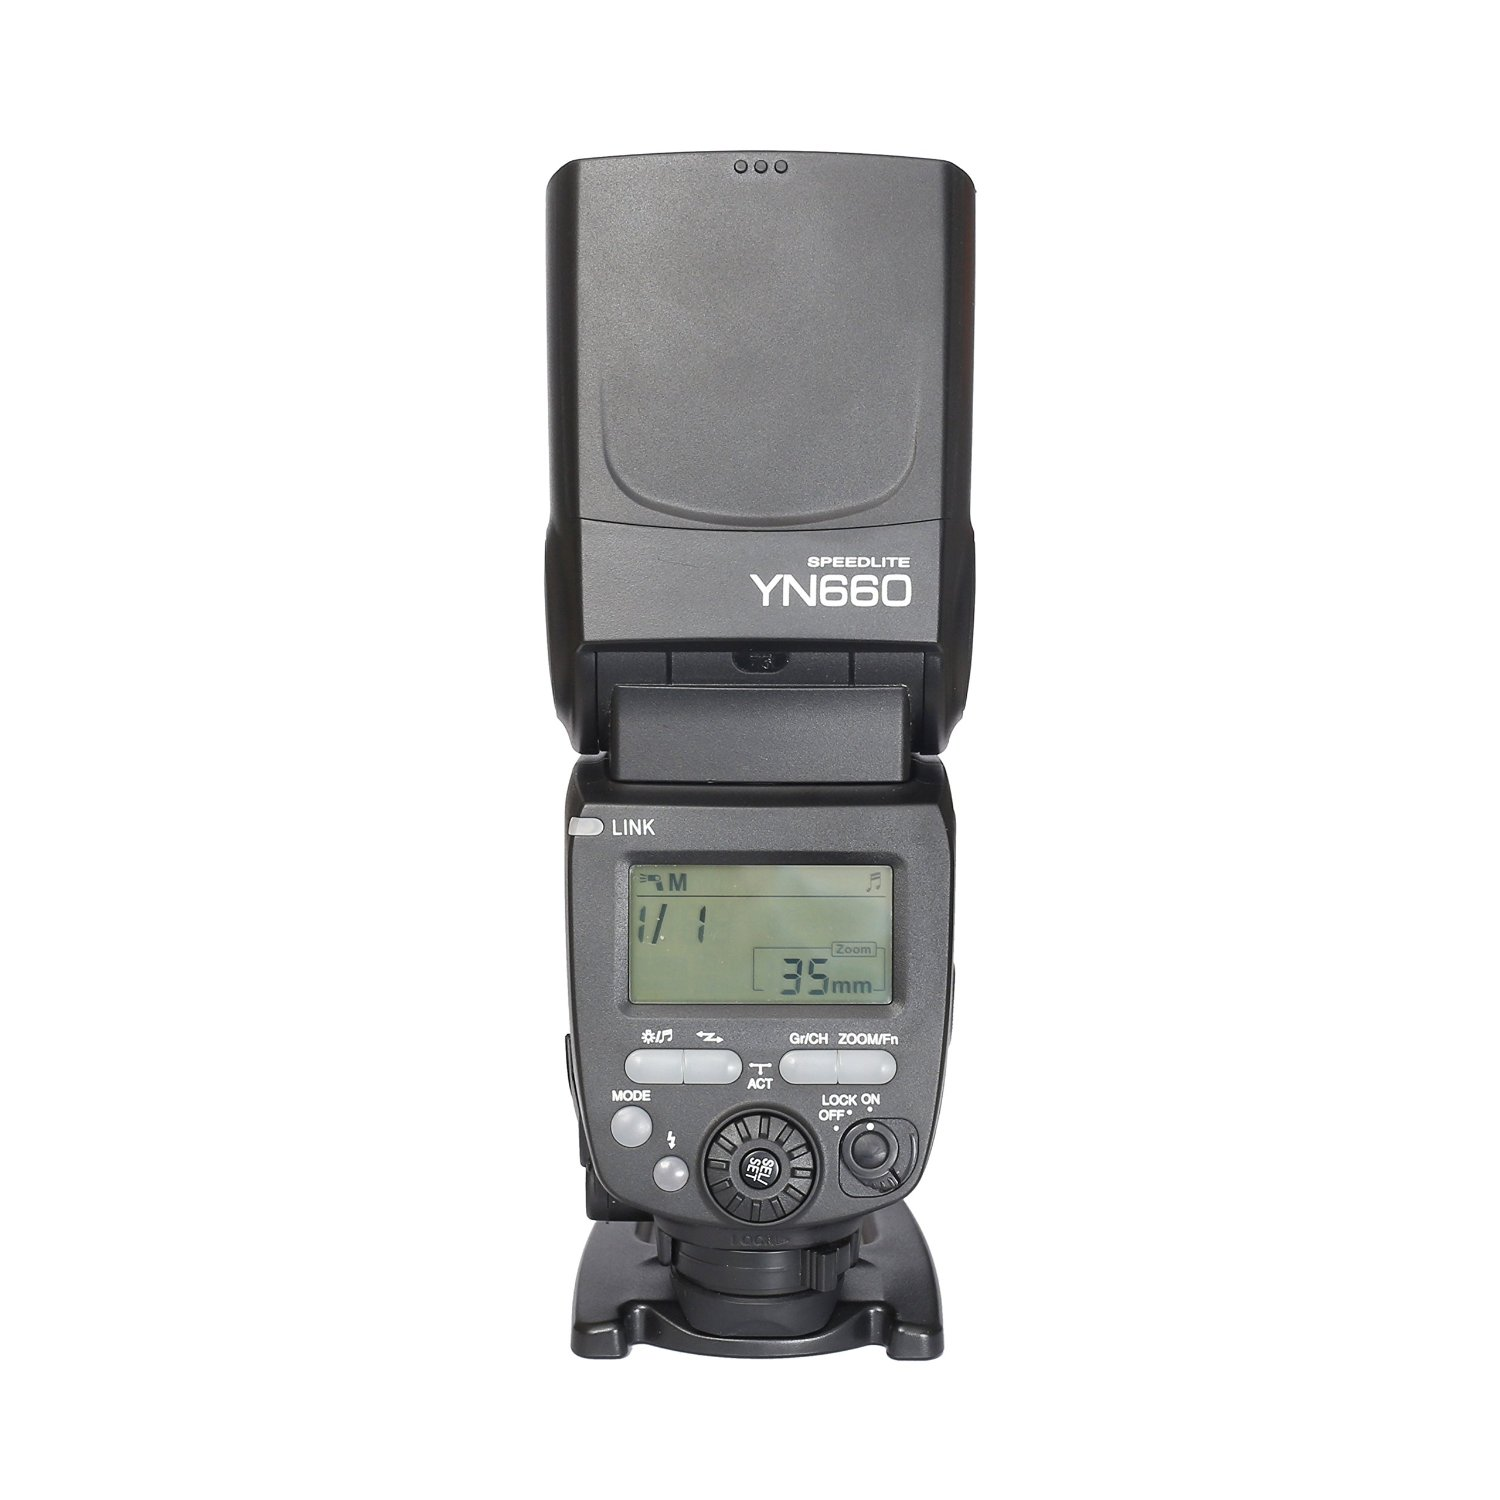 Yongnuo YN660 Wireless GN66 2.4G Flash Speedlite for Canon Nikon Pentax Cameras